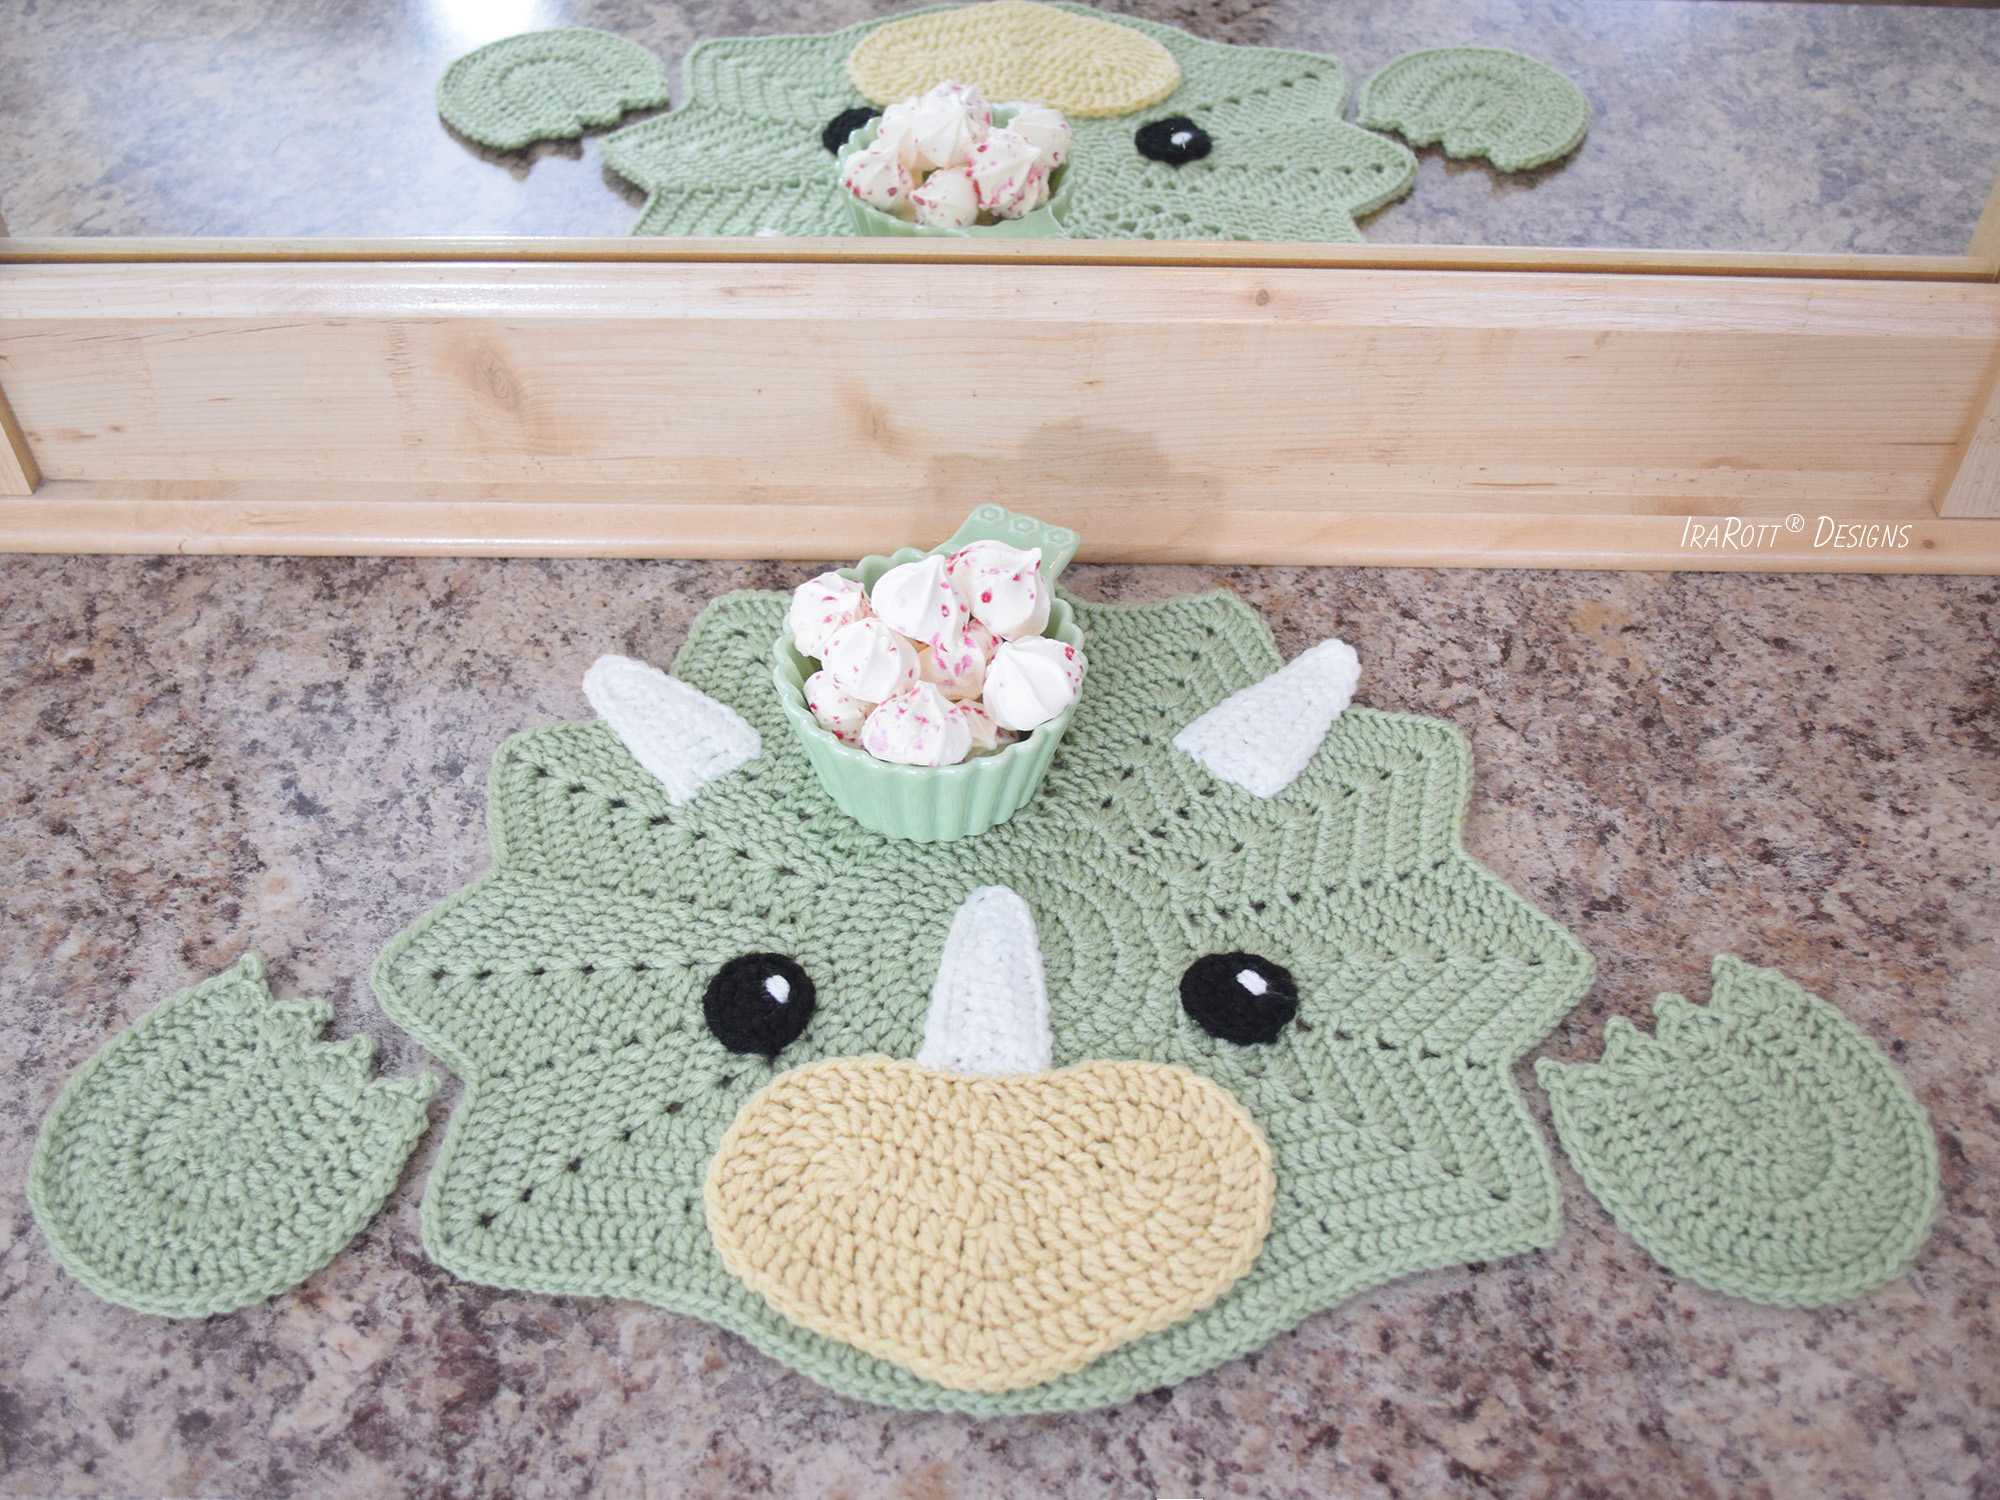 Tops The Triceratops Dinosaur Placemat PDF Crochet Pattern by IraRott